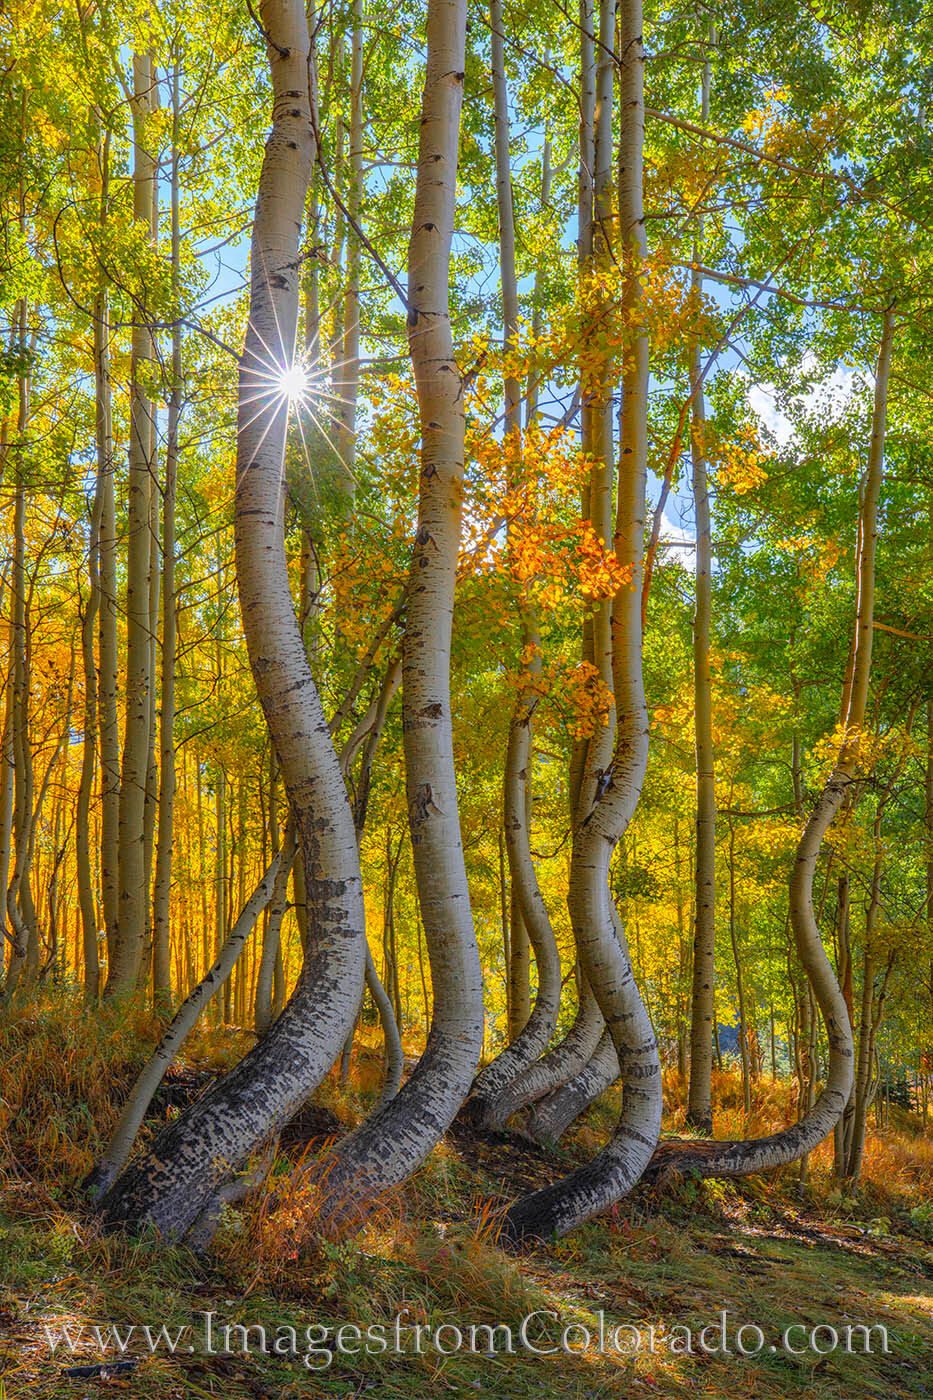 Aspen trees dance in the morning sunlight on a cold October morning. The Autumn colors are on full display in the warm rays....